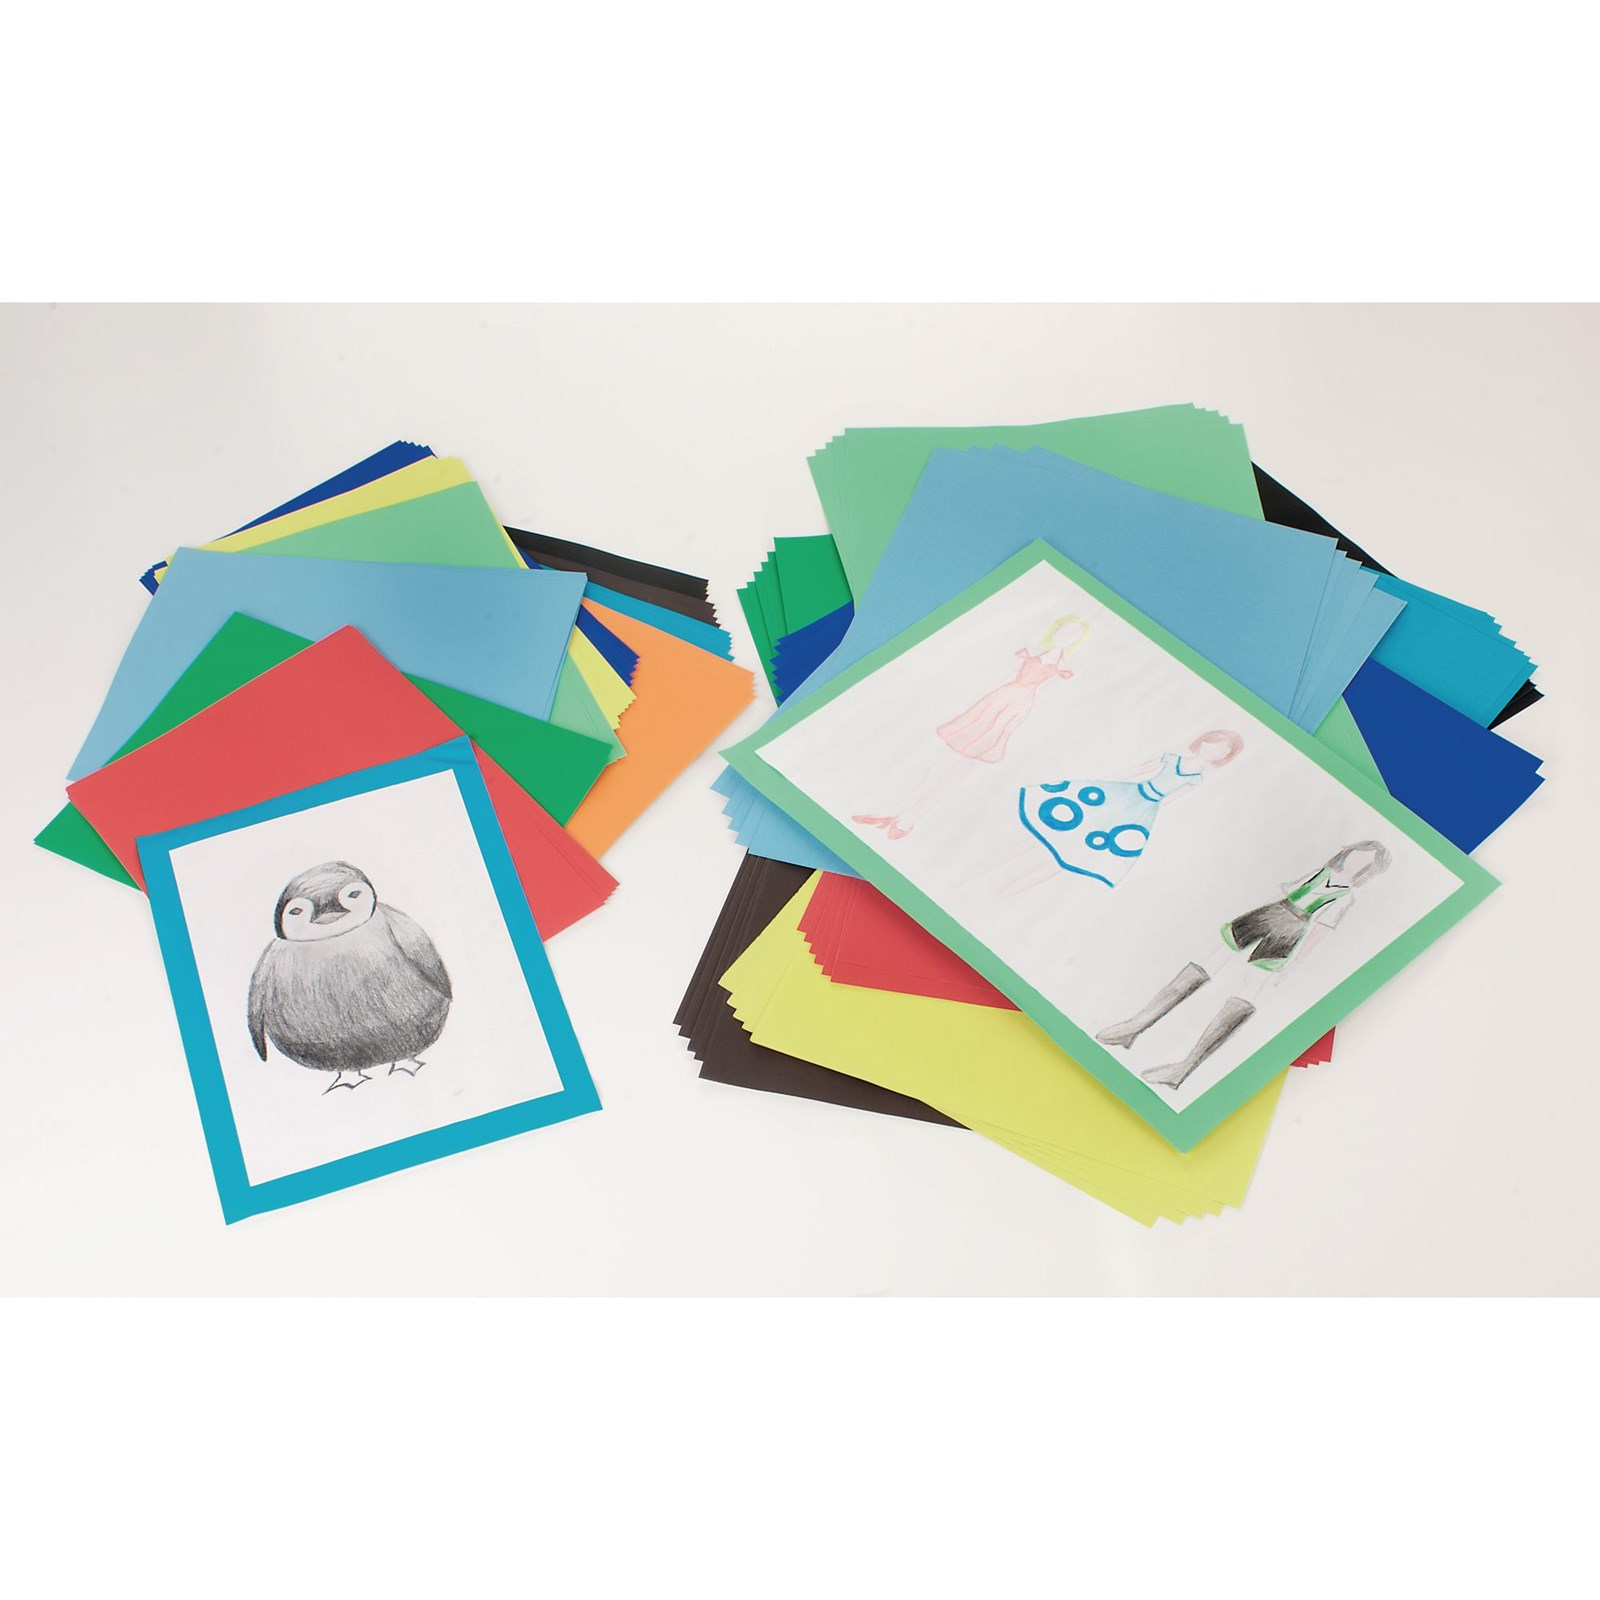 Classmates A4+ Mounting Paper - Assorted Pack of 100